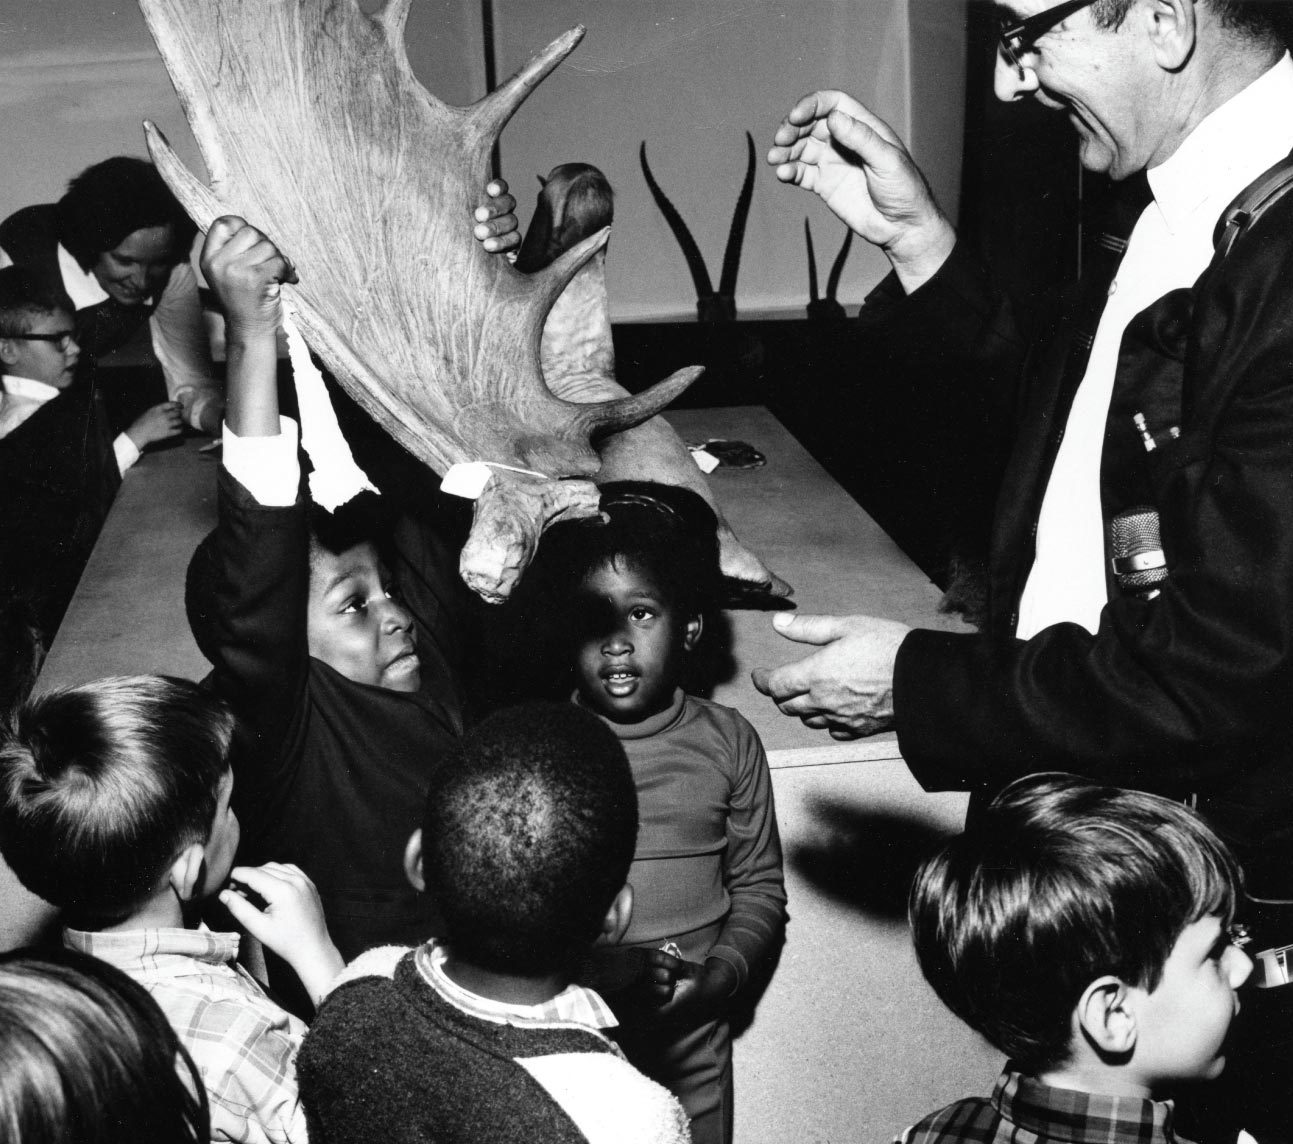 Lab founder with young students in the 1970s